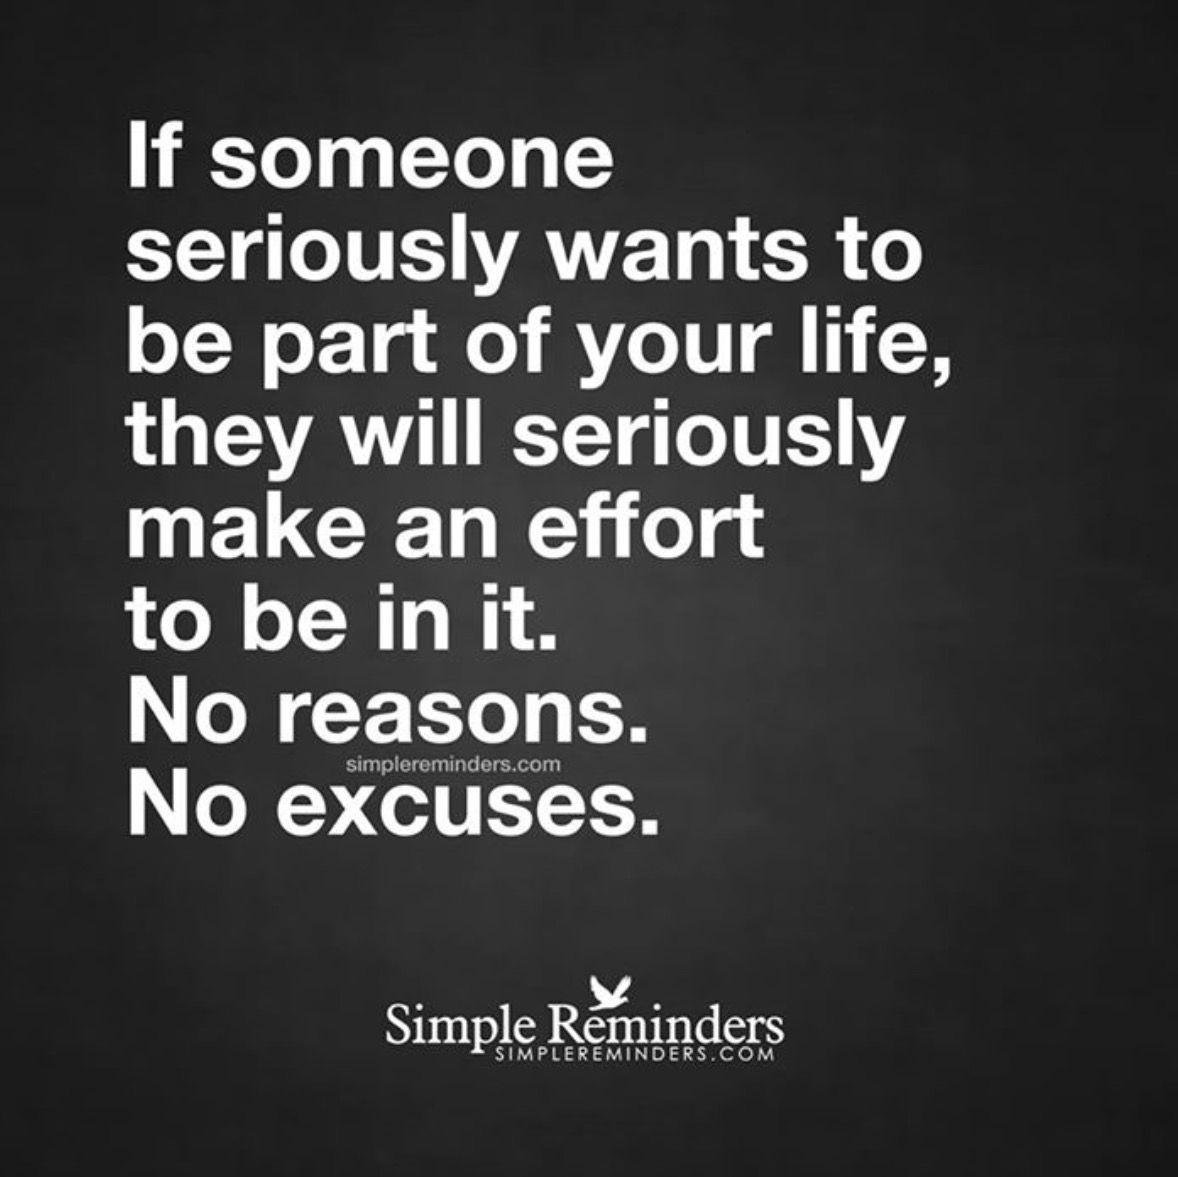 Pin by Navida Swanger on Thoughts | Serious relationship quotes, Serious quotes, Priorities quotes